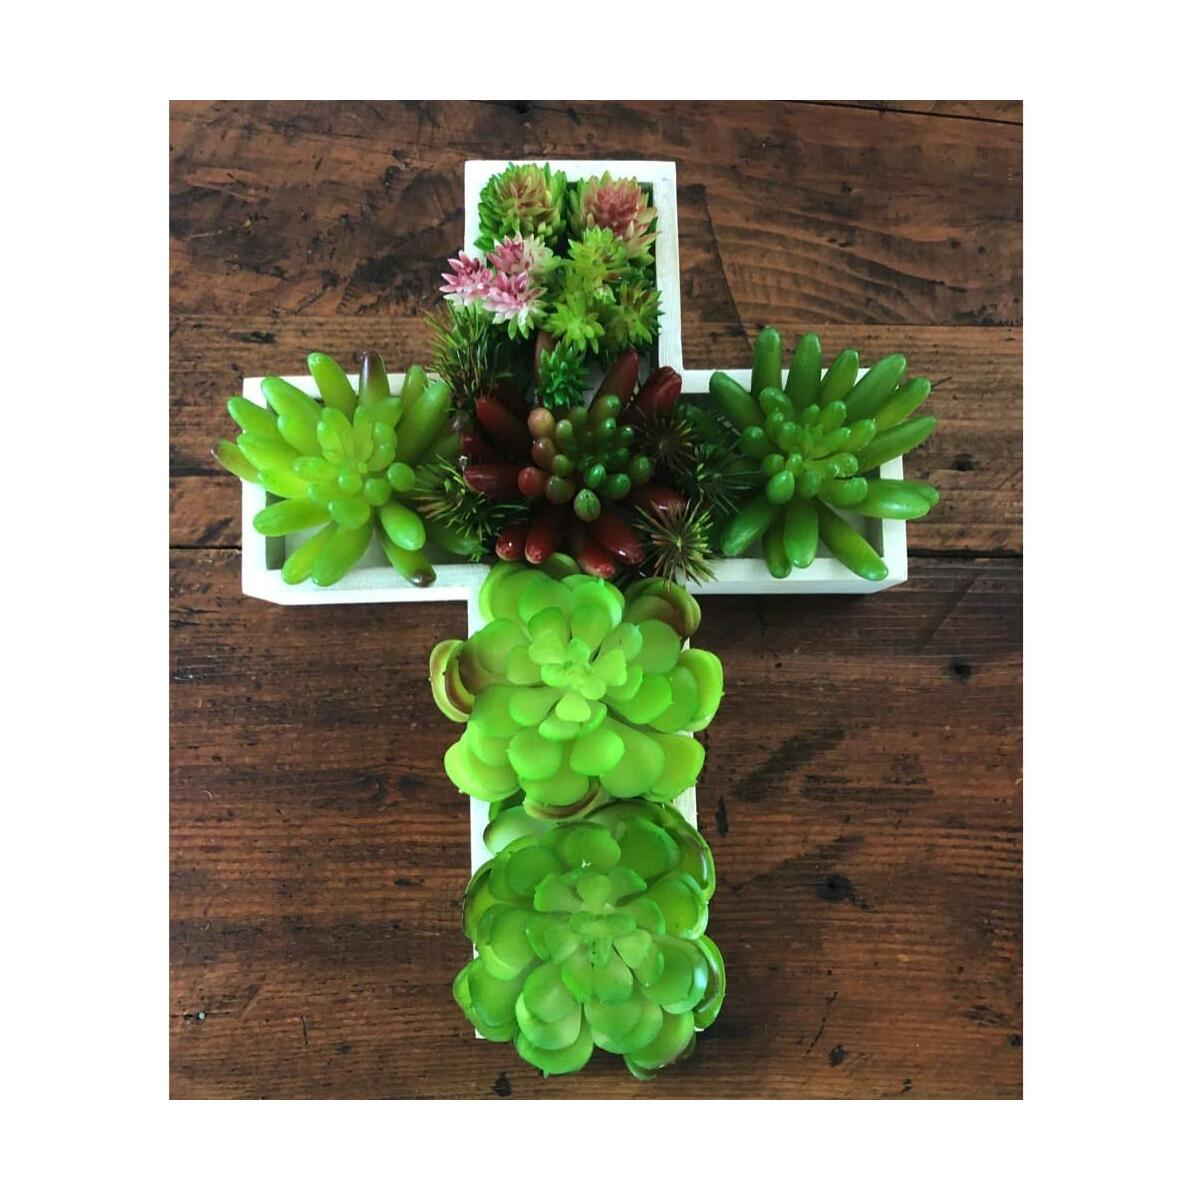 Wooden Cross Planter with Artificial Succulents for Table or Succulent Wall Decor - Much loved gifts for Mom, Grandma